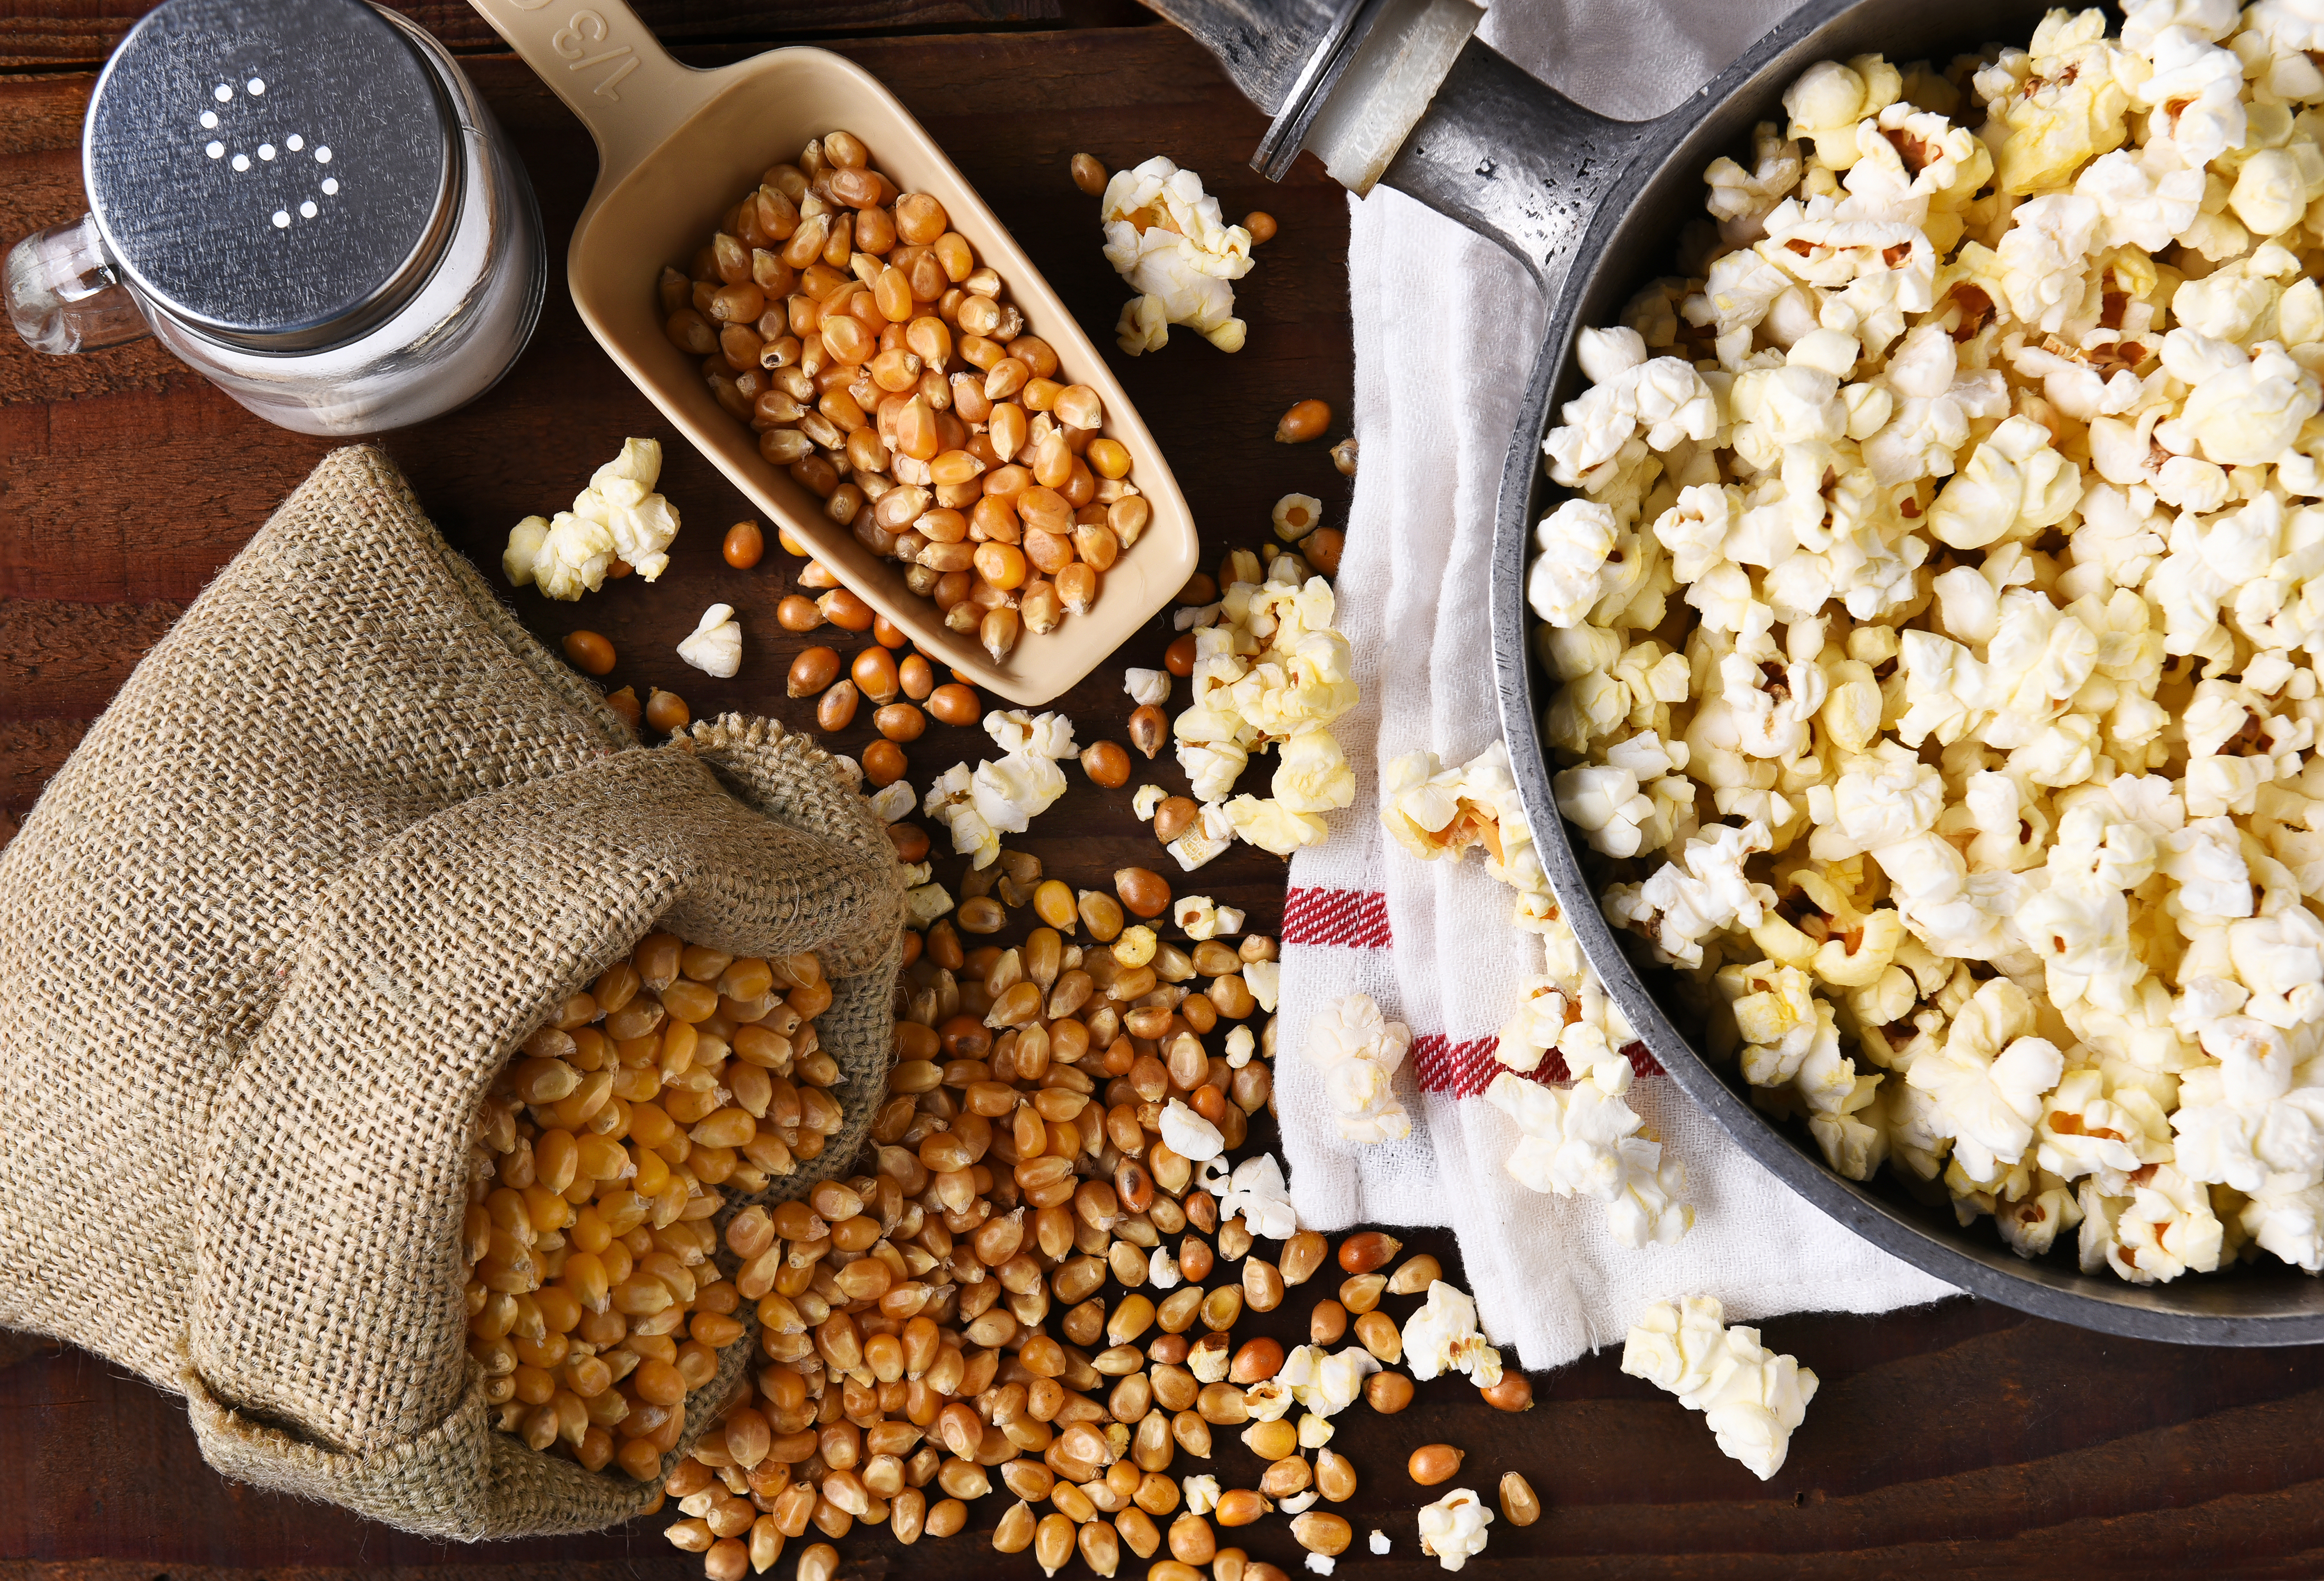 kettle material for popcorn makers